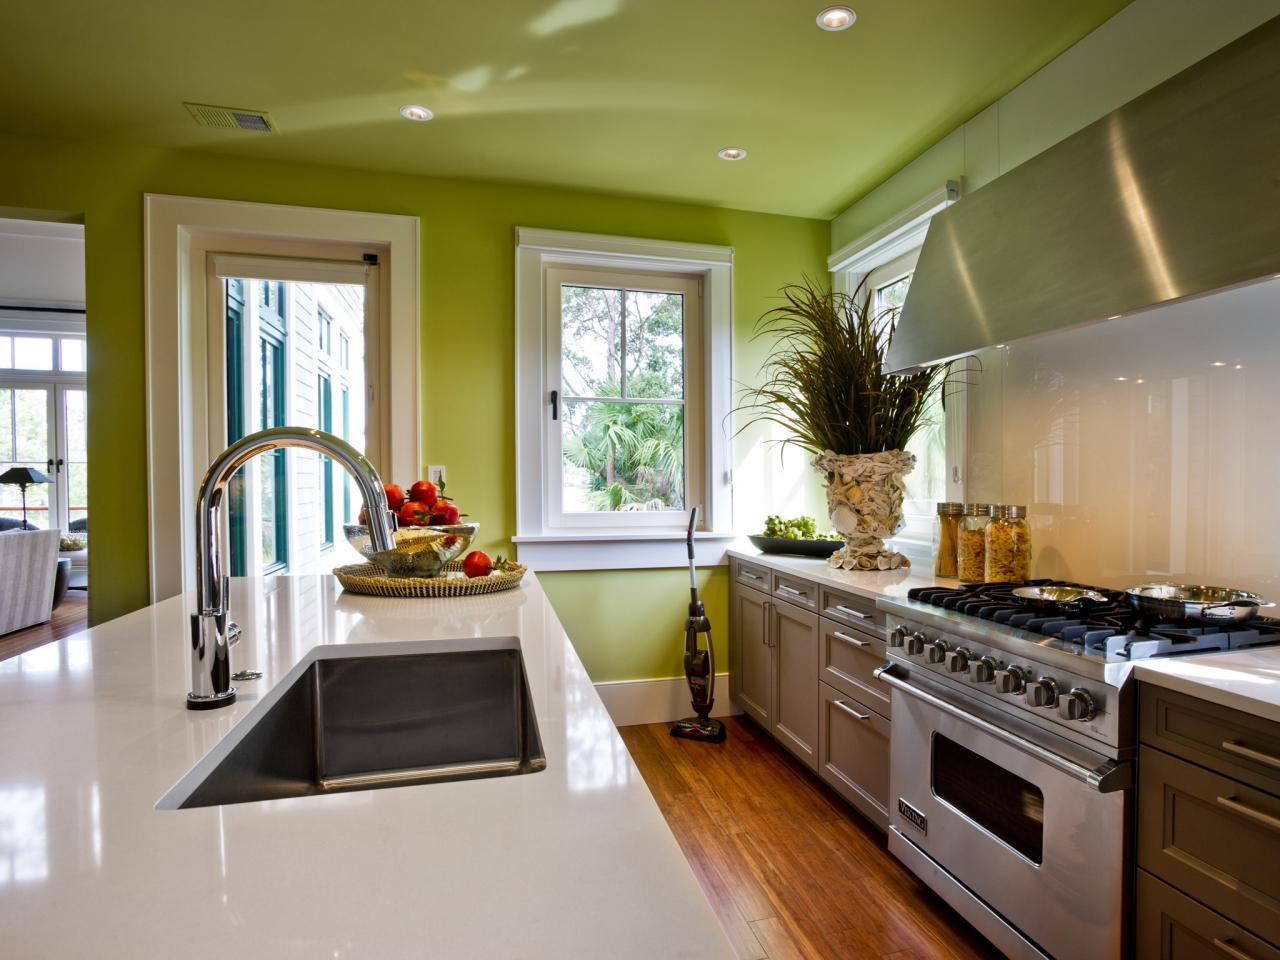 Paint colors for kitchens pictures ideas tips from for Kitchen wall color ideas